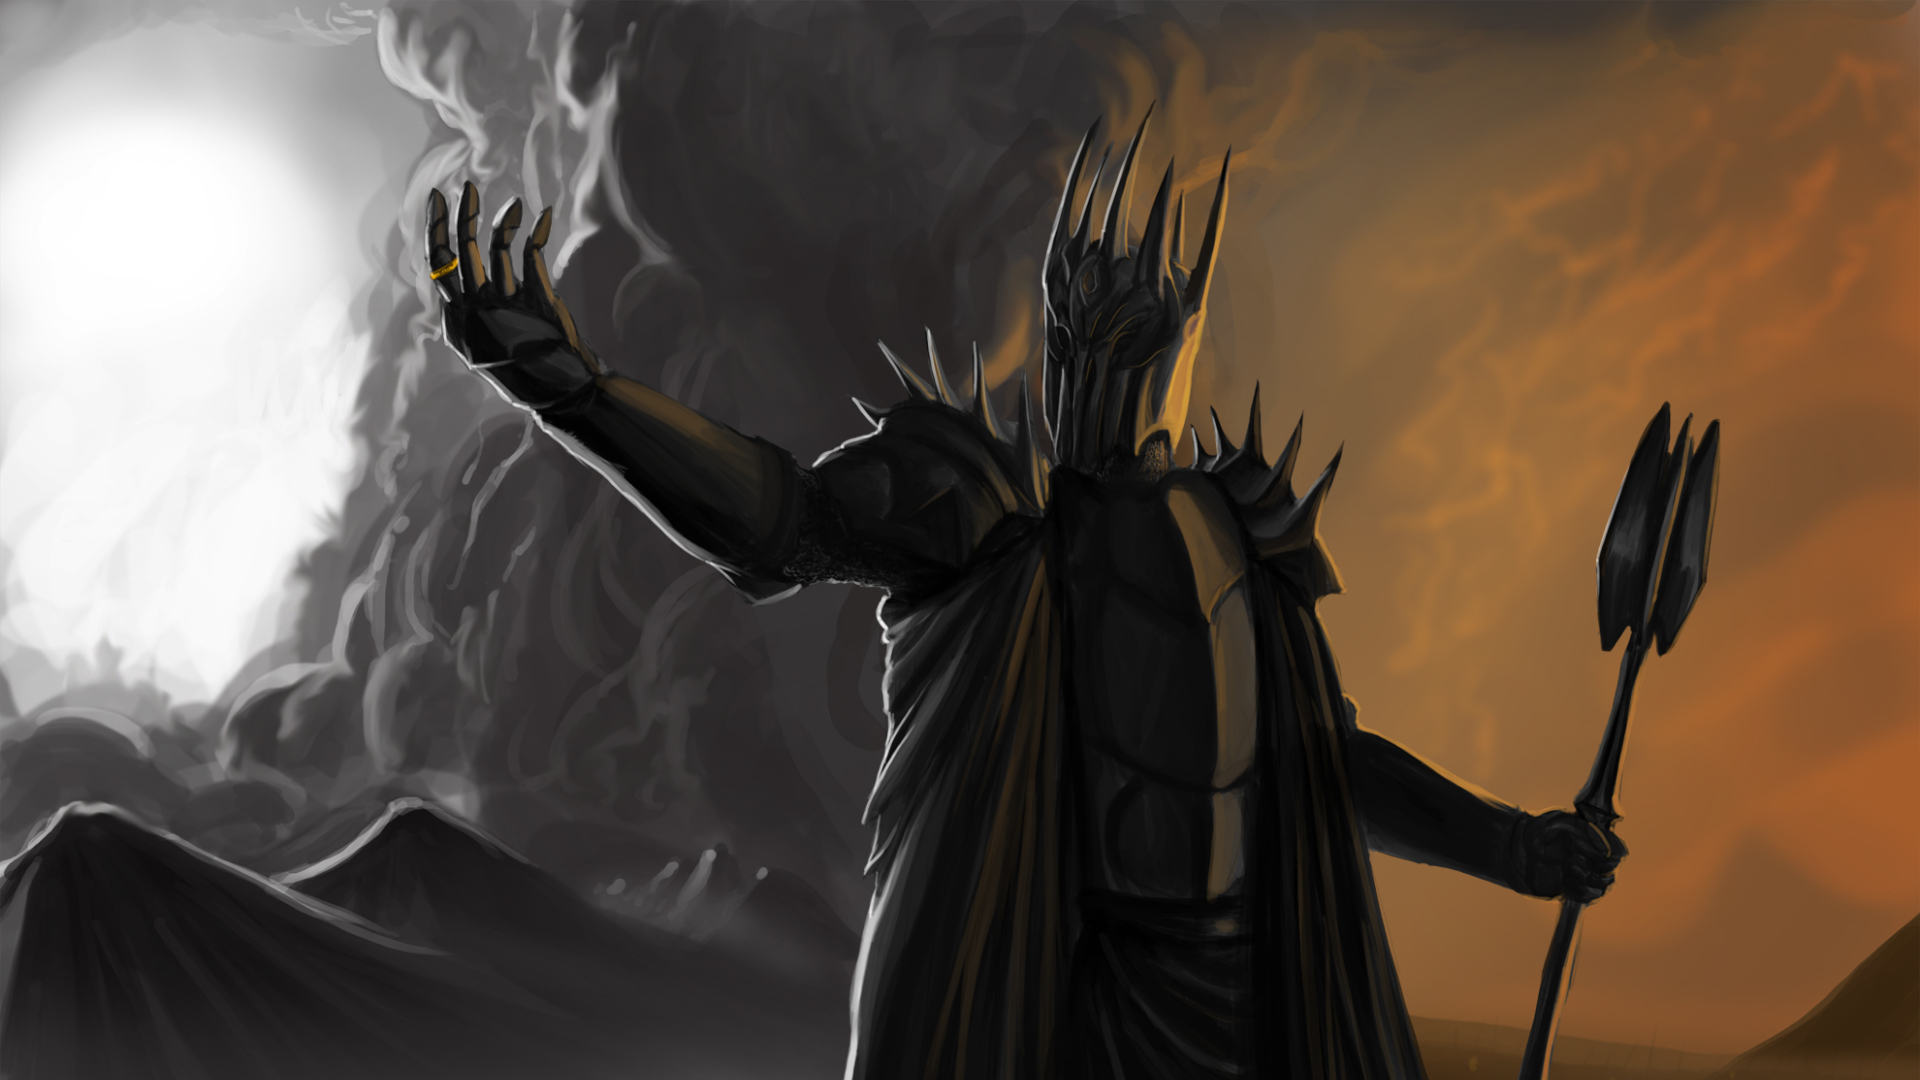 1920x1080 Sauron Lord Of The Rings 1080p Laptop Full Hd Wallpaper